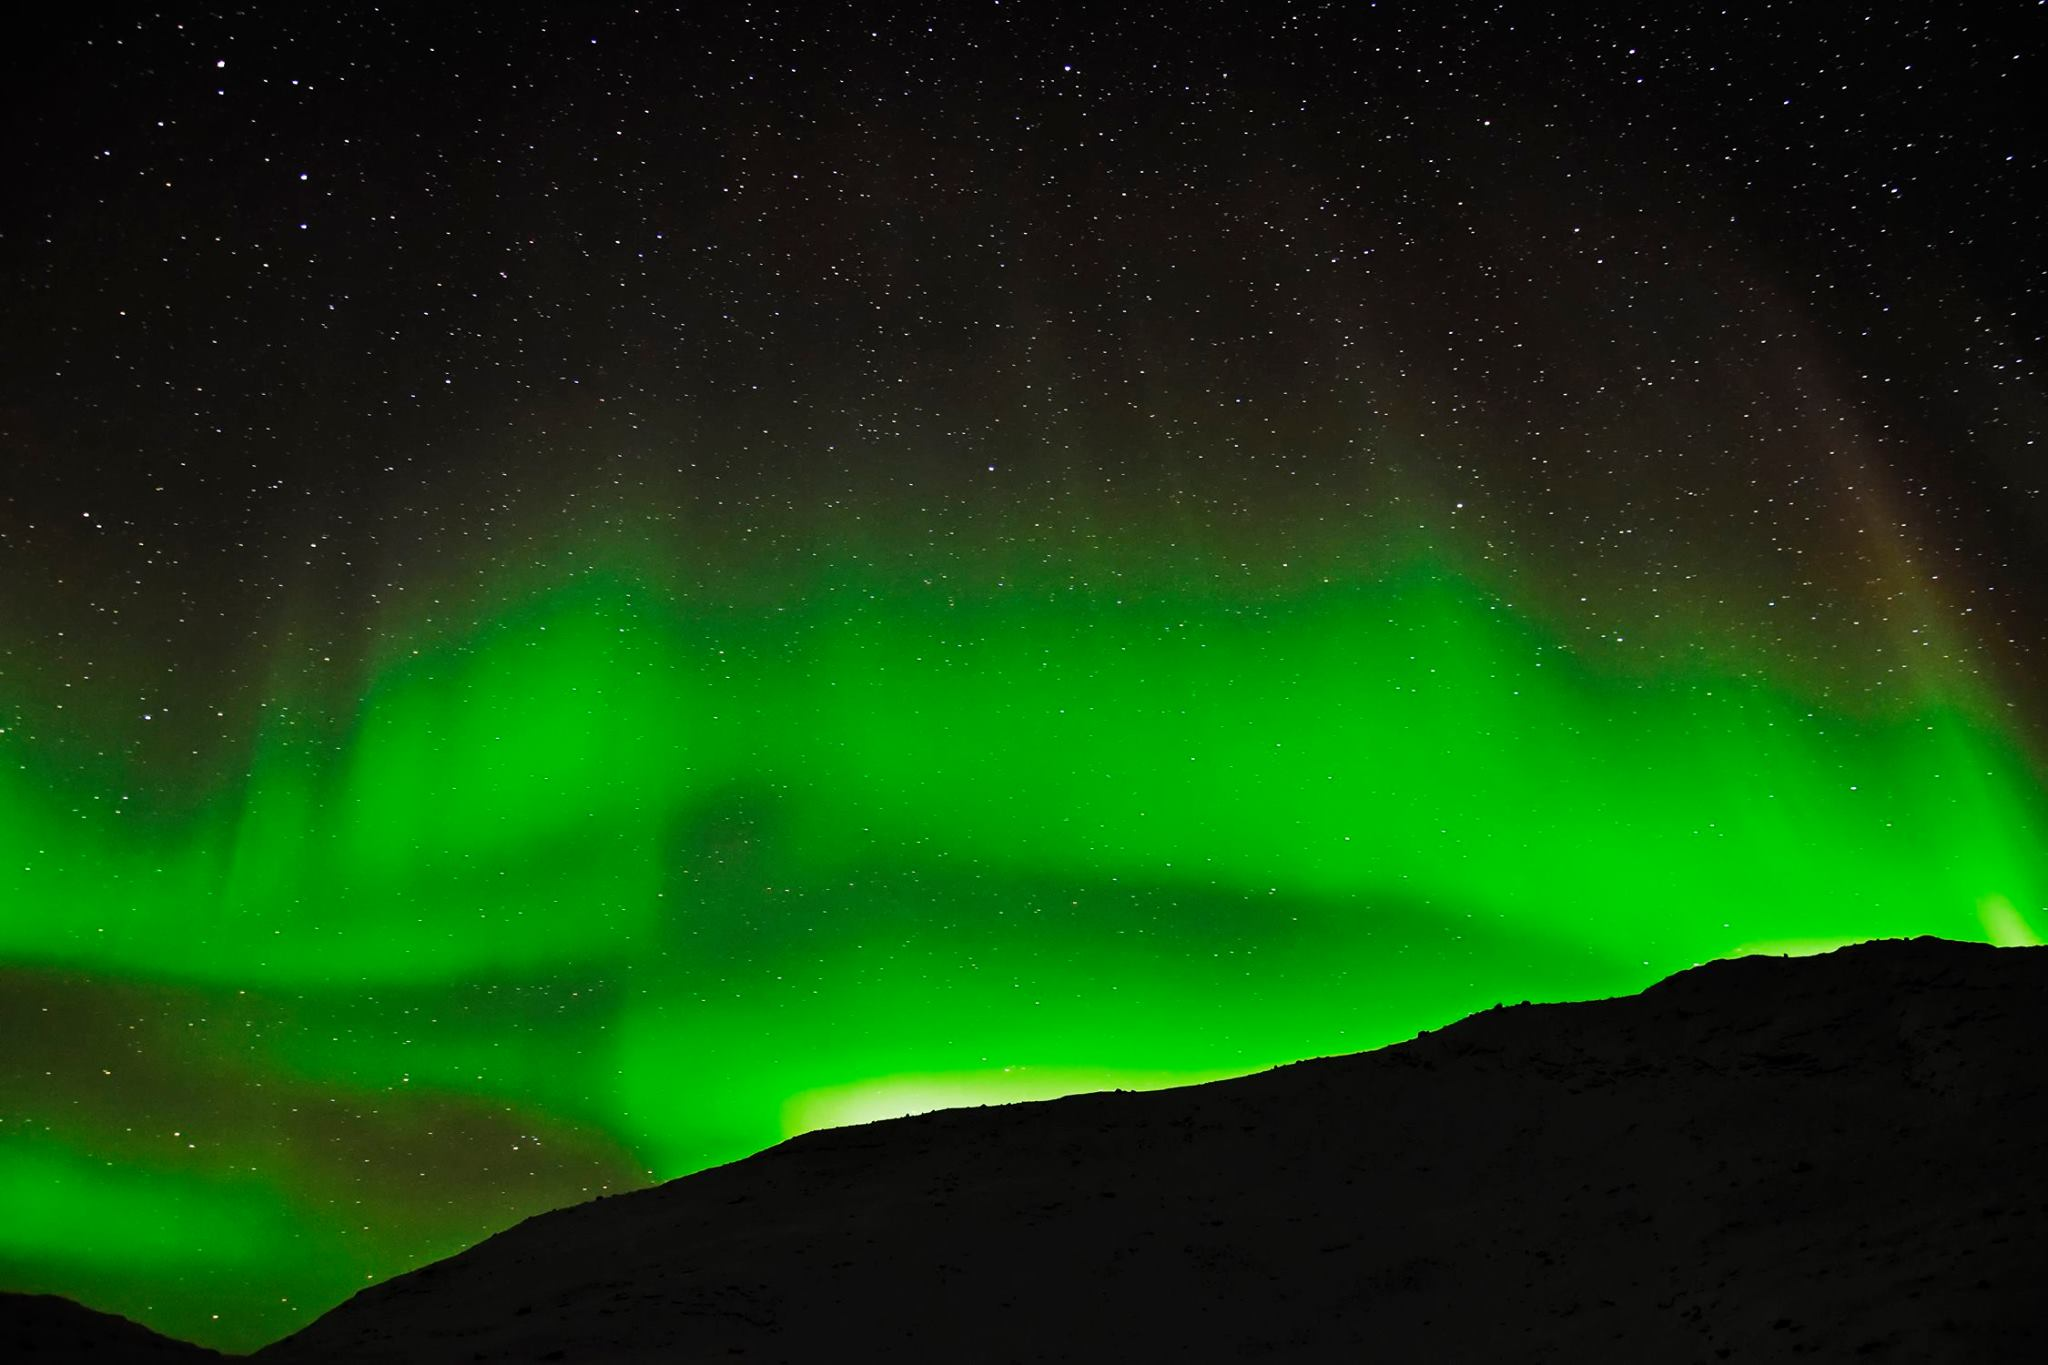 Aurora in Greenland taken by Dang Khoa